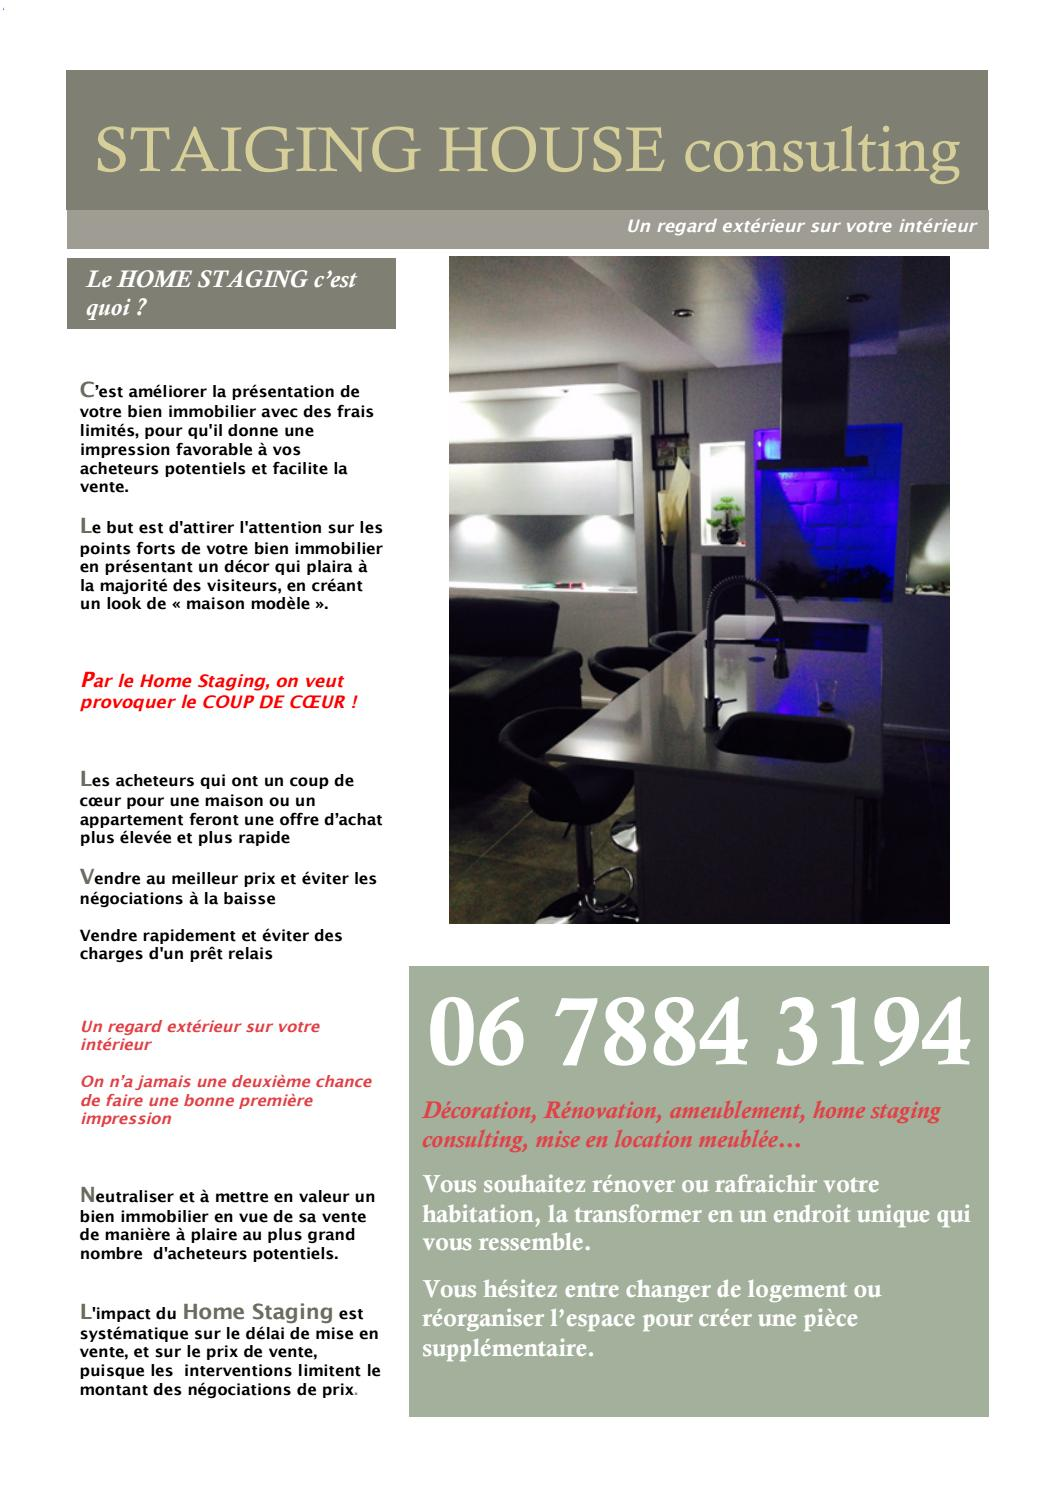 Exemple Devis Home Staging staging house consultingstaiging house consulting - issuu